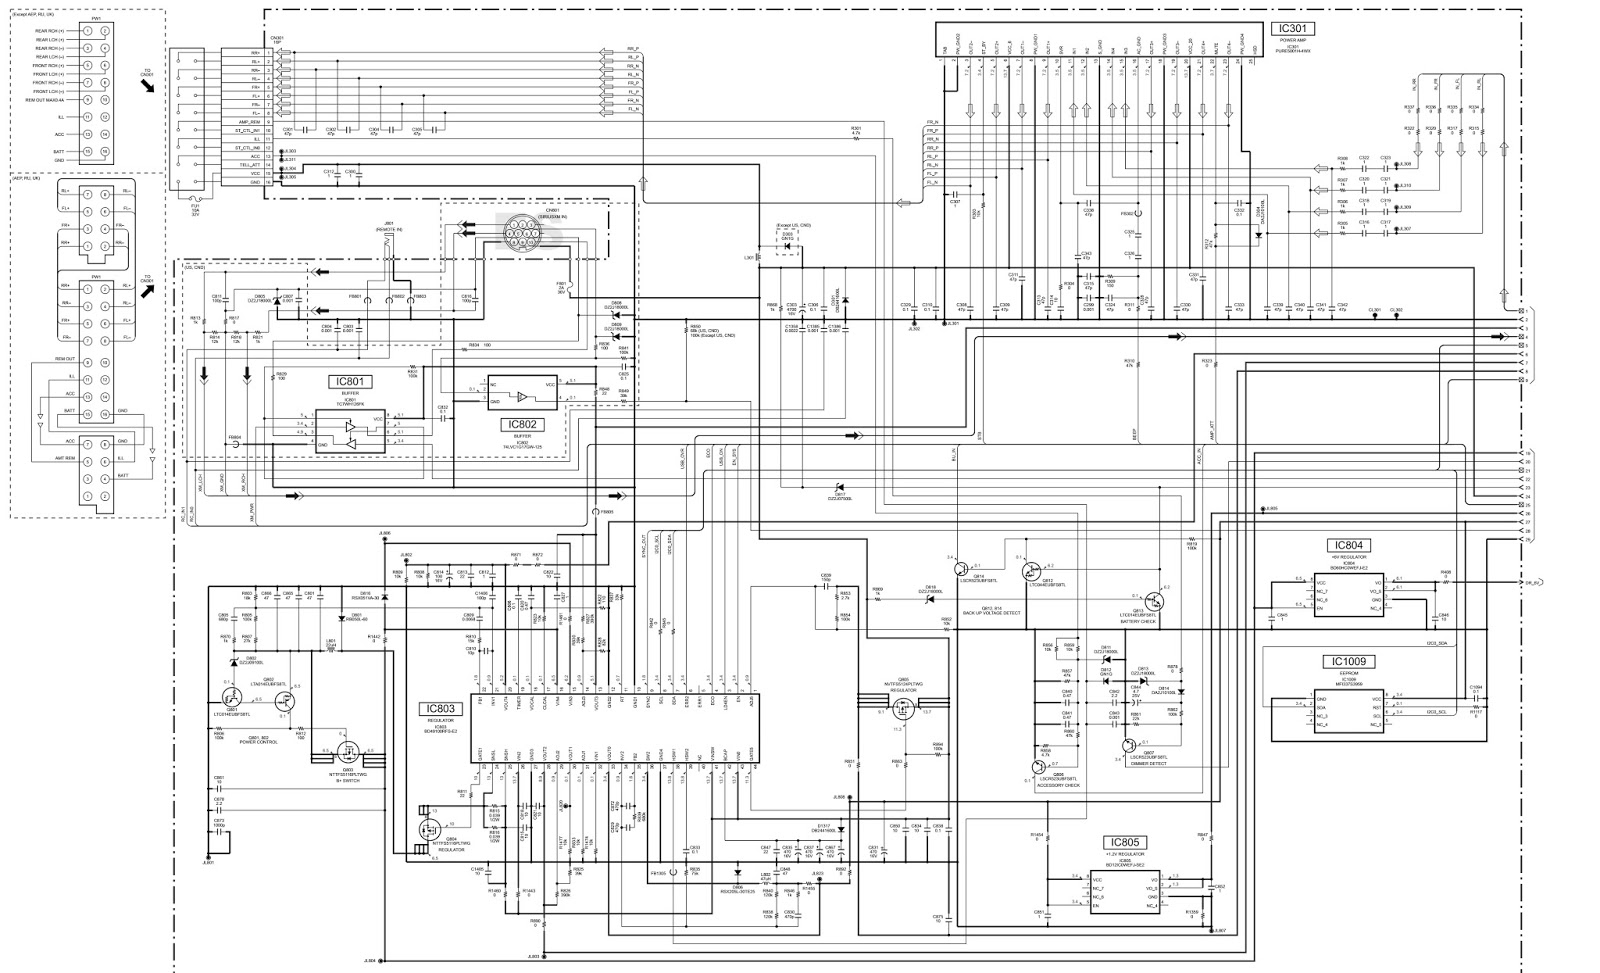 wiring diagram sony mex n5100bt